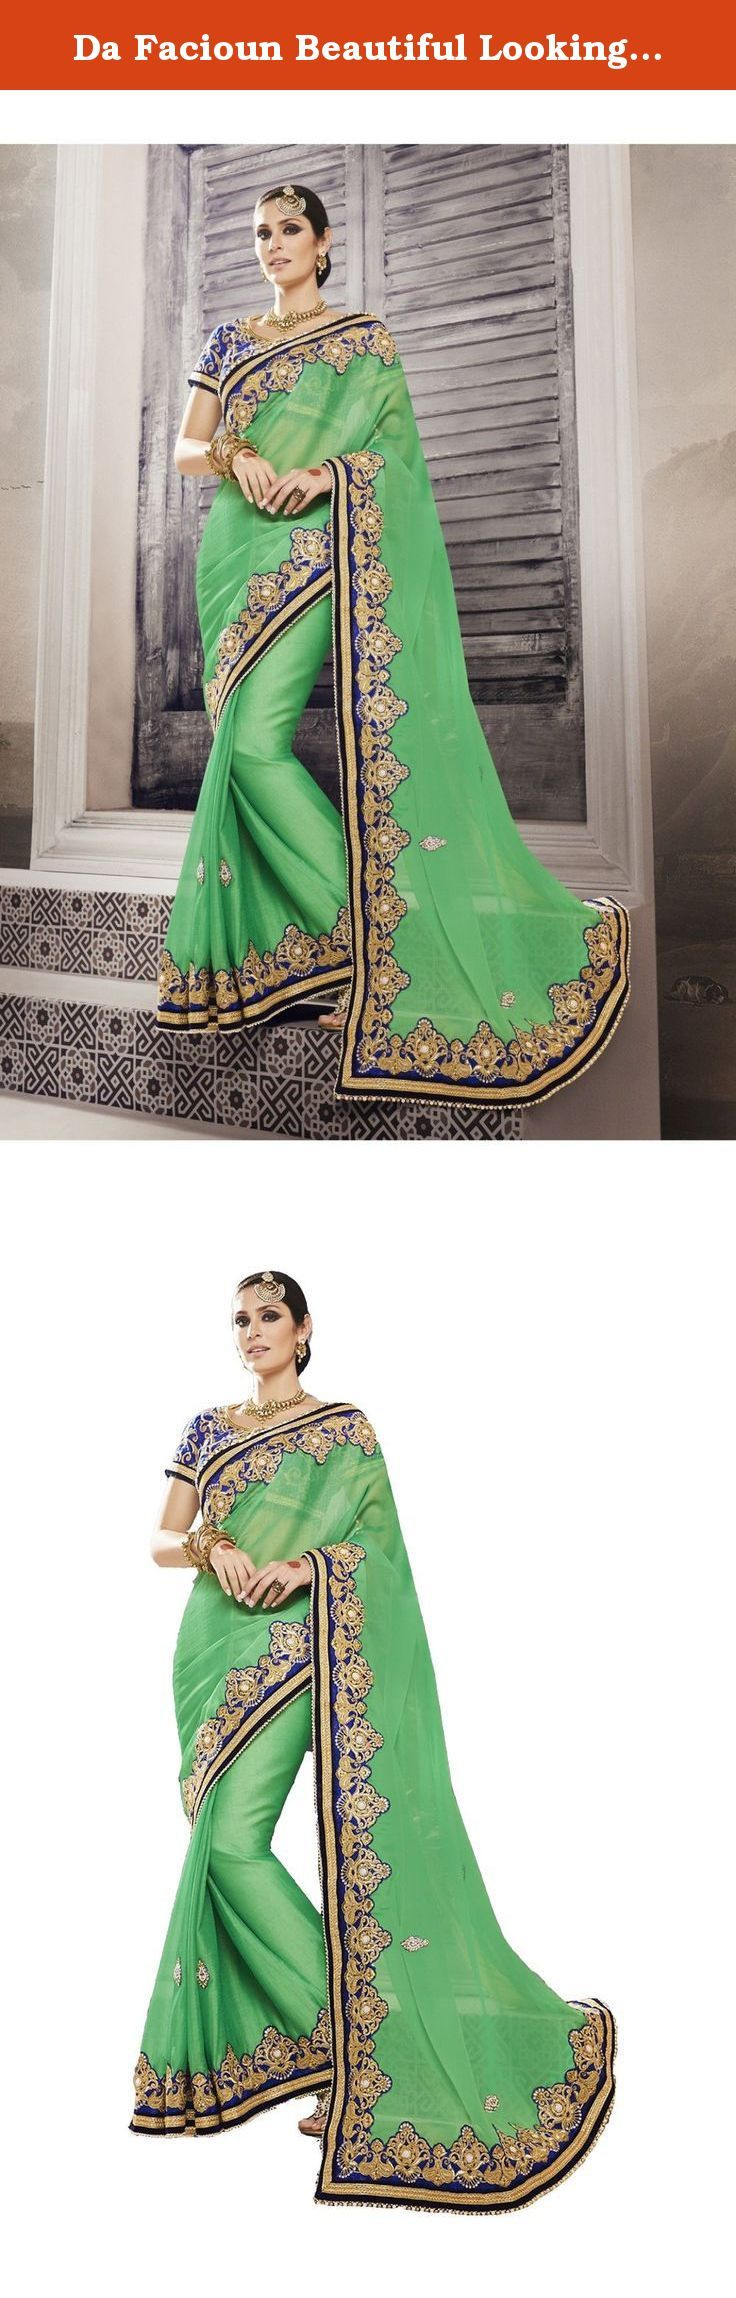 Da Facioun Beautiful Looking Chiffon Green Women Ethnic Saree 79438. Appear stunningly pleasing in this Parrot Green Chiffon Saree. The attractive Lace Embroidery work through the attire is awe-inspiring.